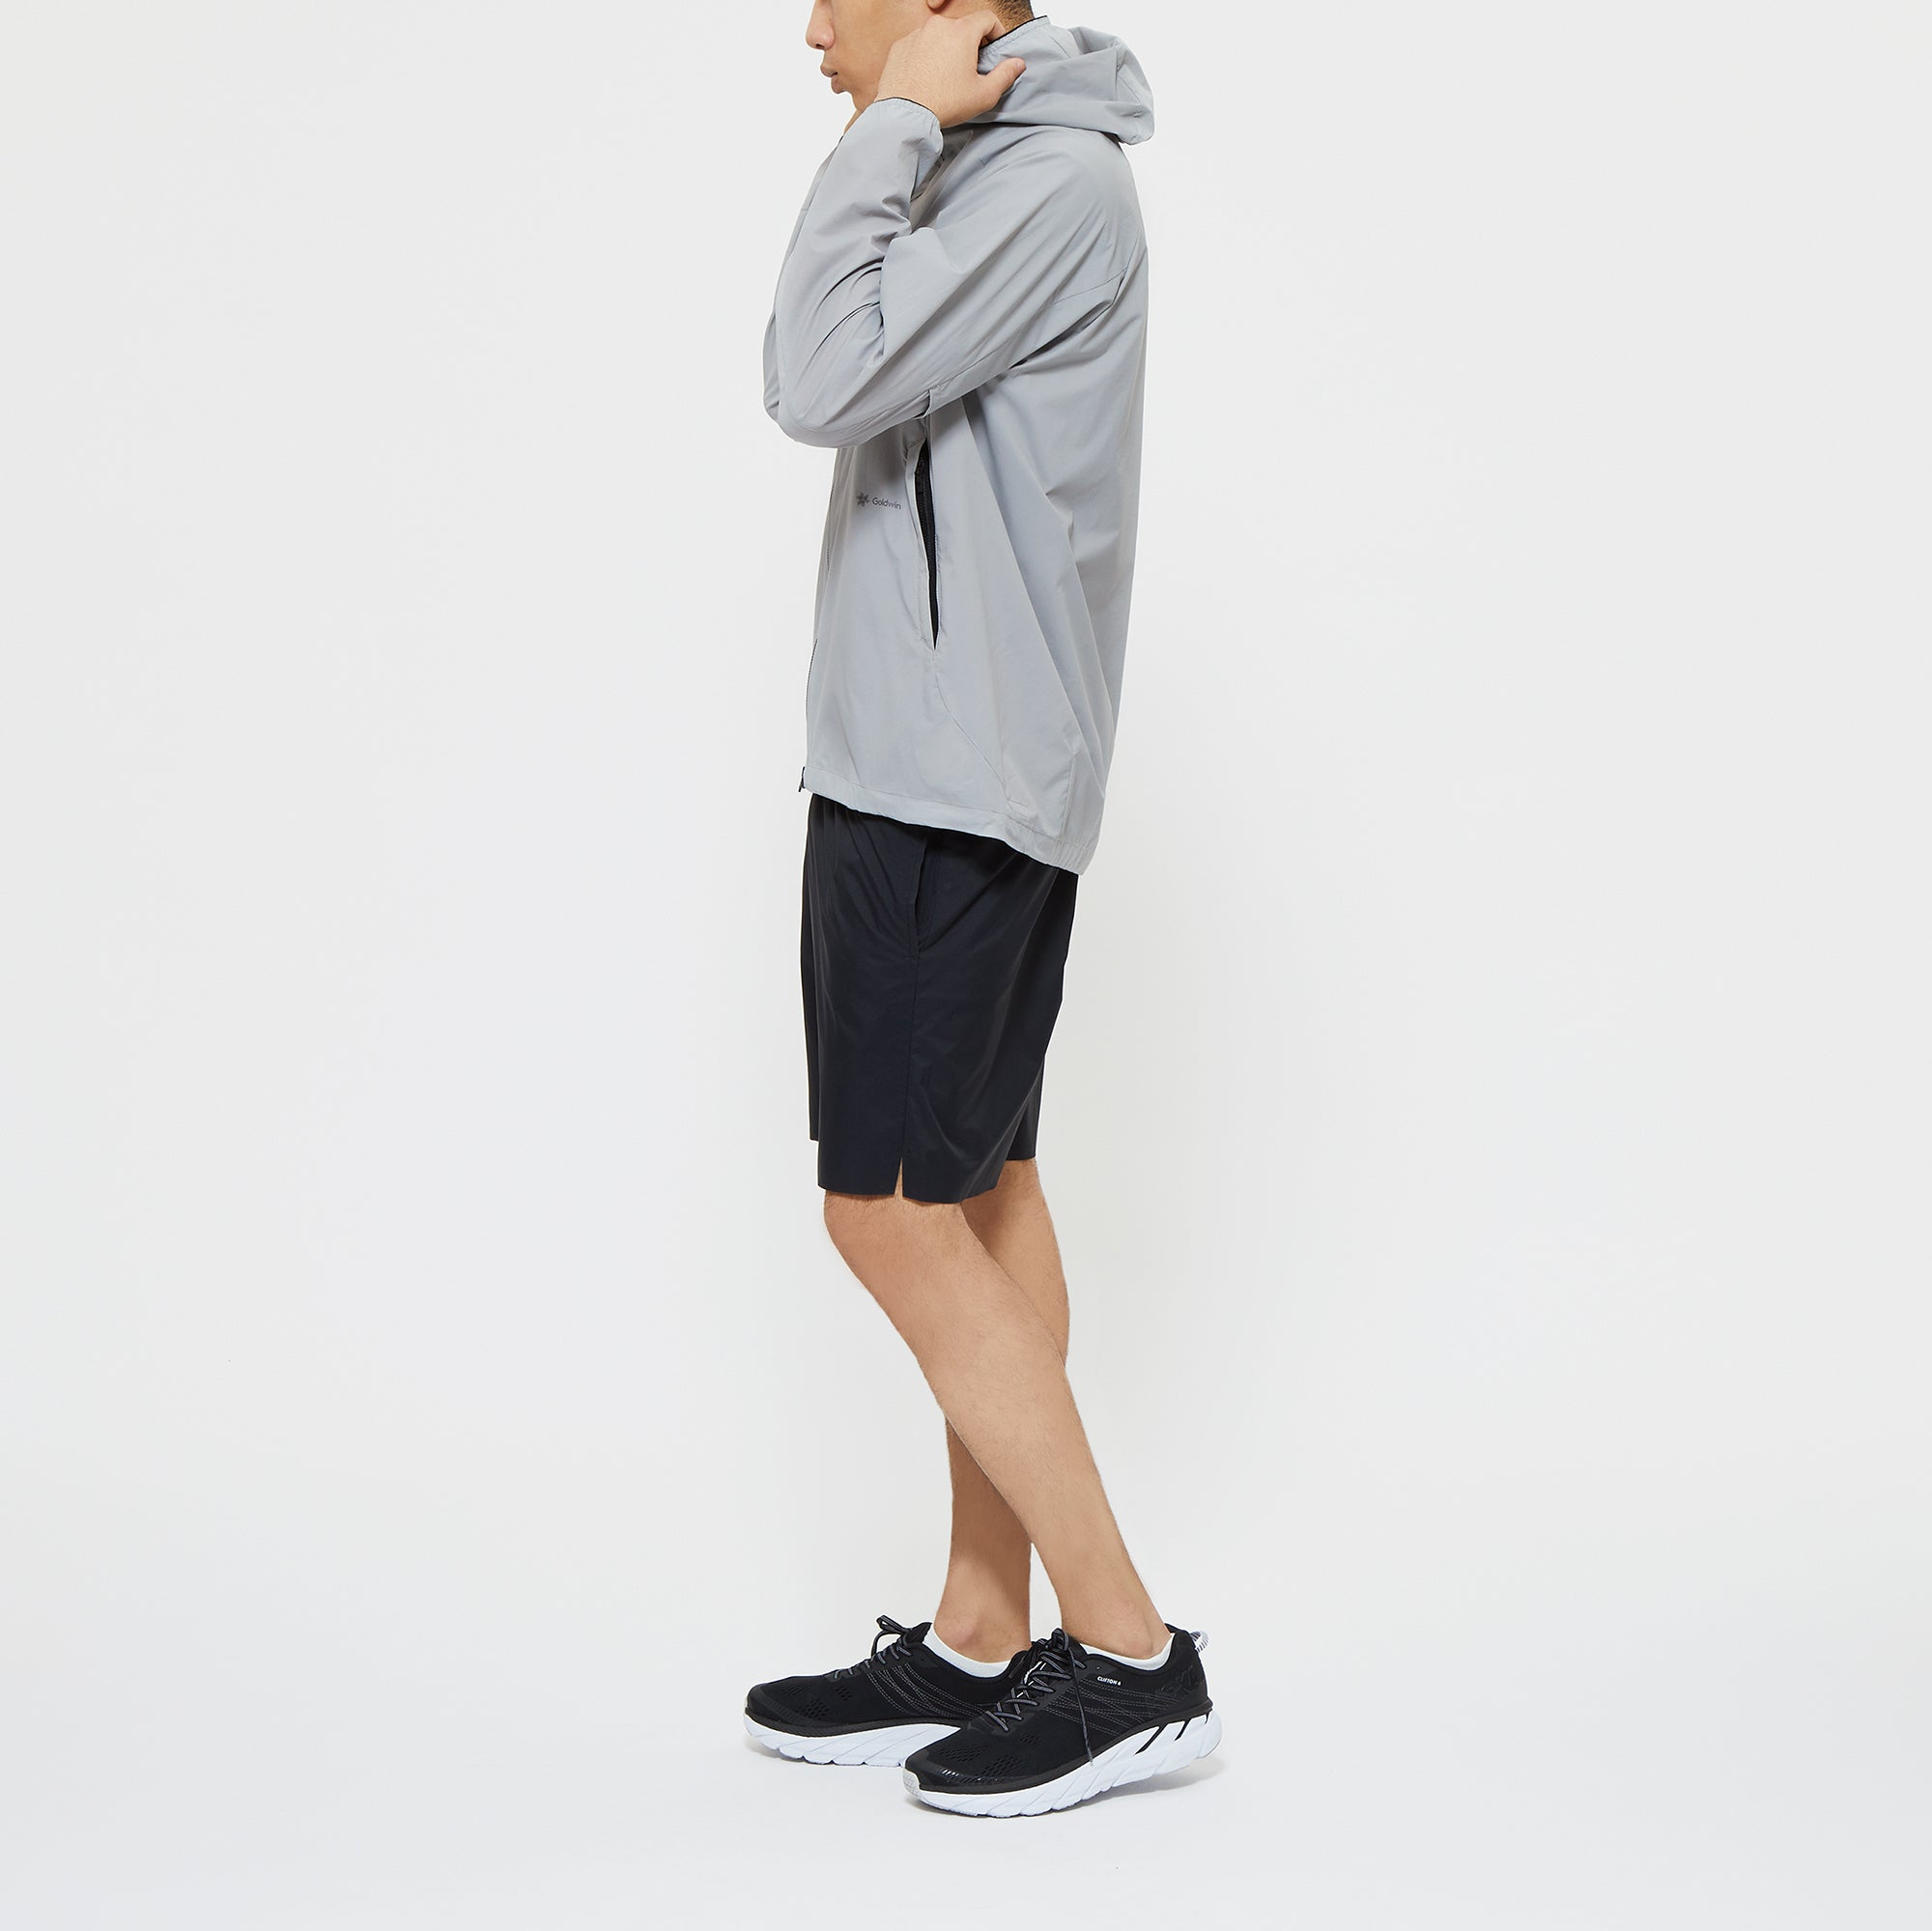 WOVEN STRETCH HOODIE - ASH GRAY